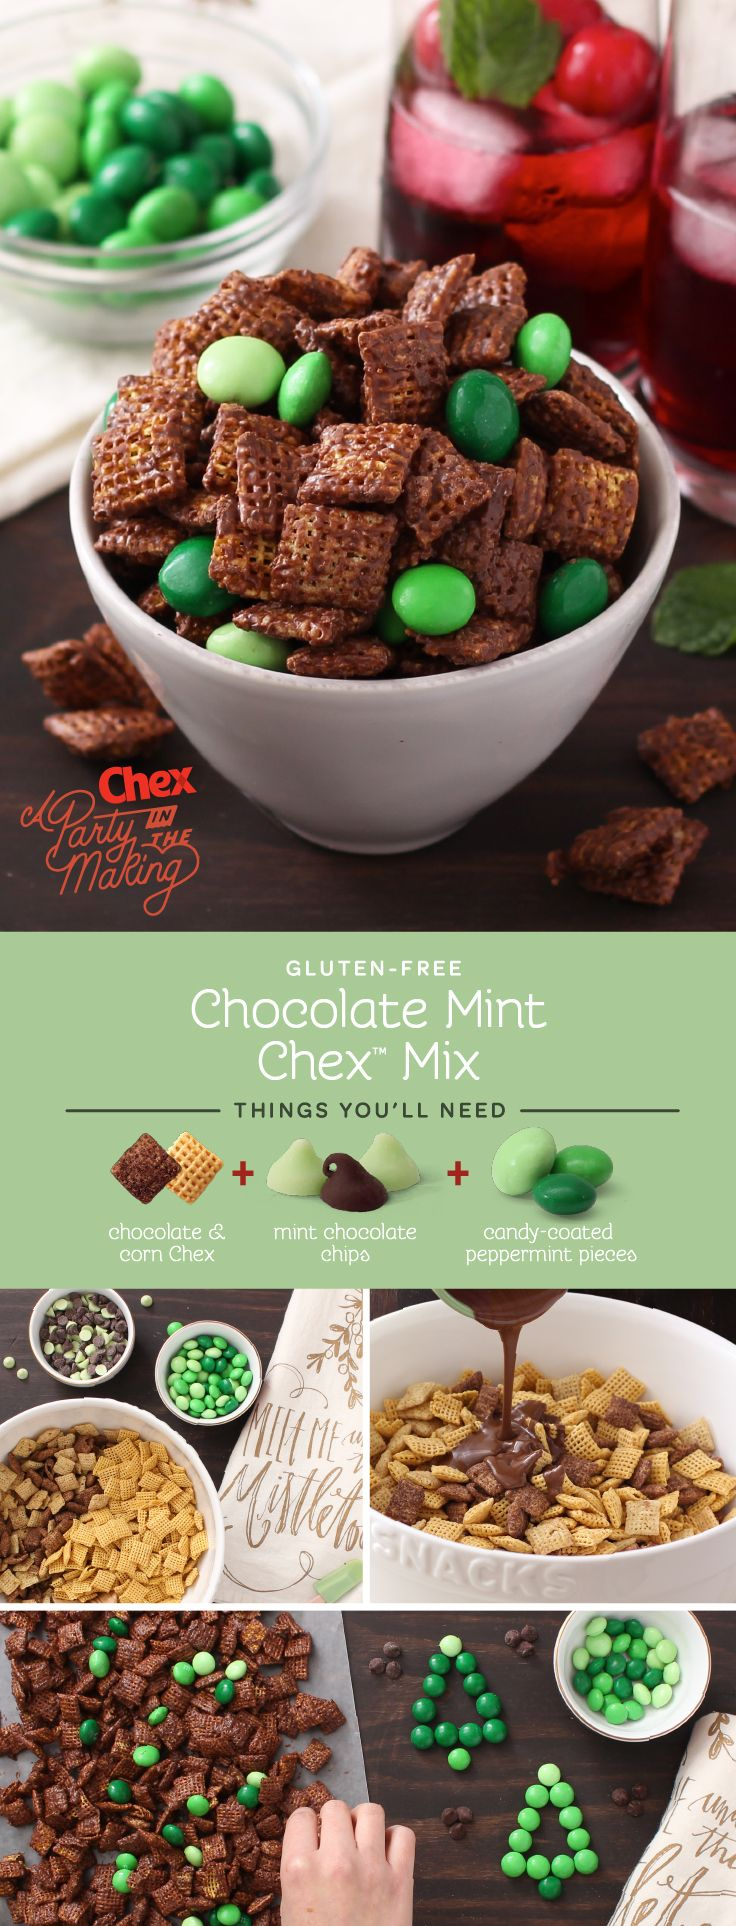 Chocolate + mint is a must during the holidays, and this festive snack mix is a simple (and gluten free) way to serve up your favorite flavor! With just four ingredients, Homemade Chocolate Mint Chex Mix will be your new go-to holiday party treat.